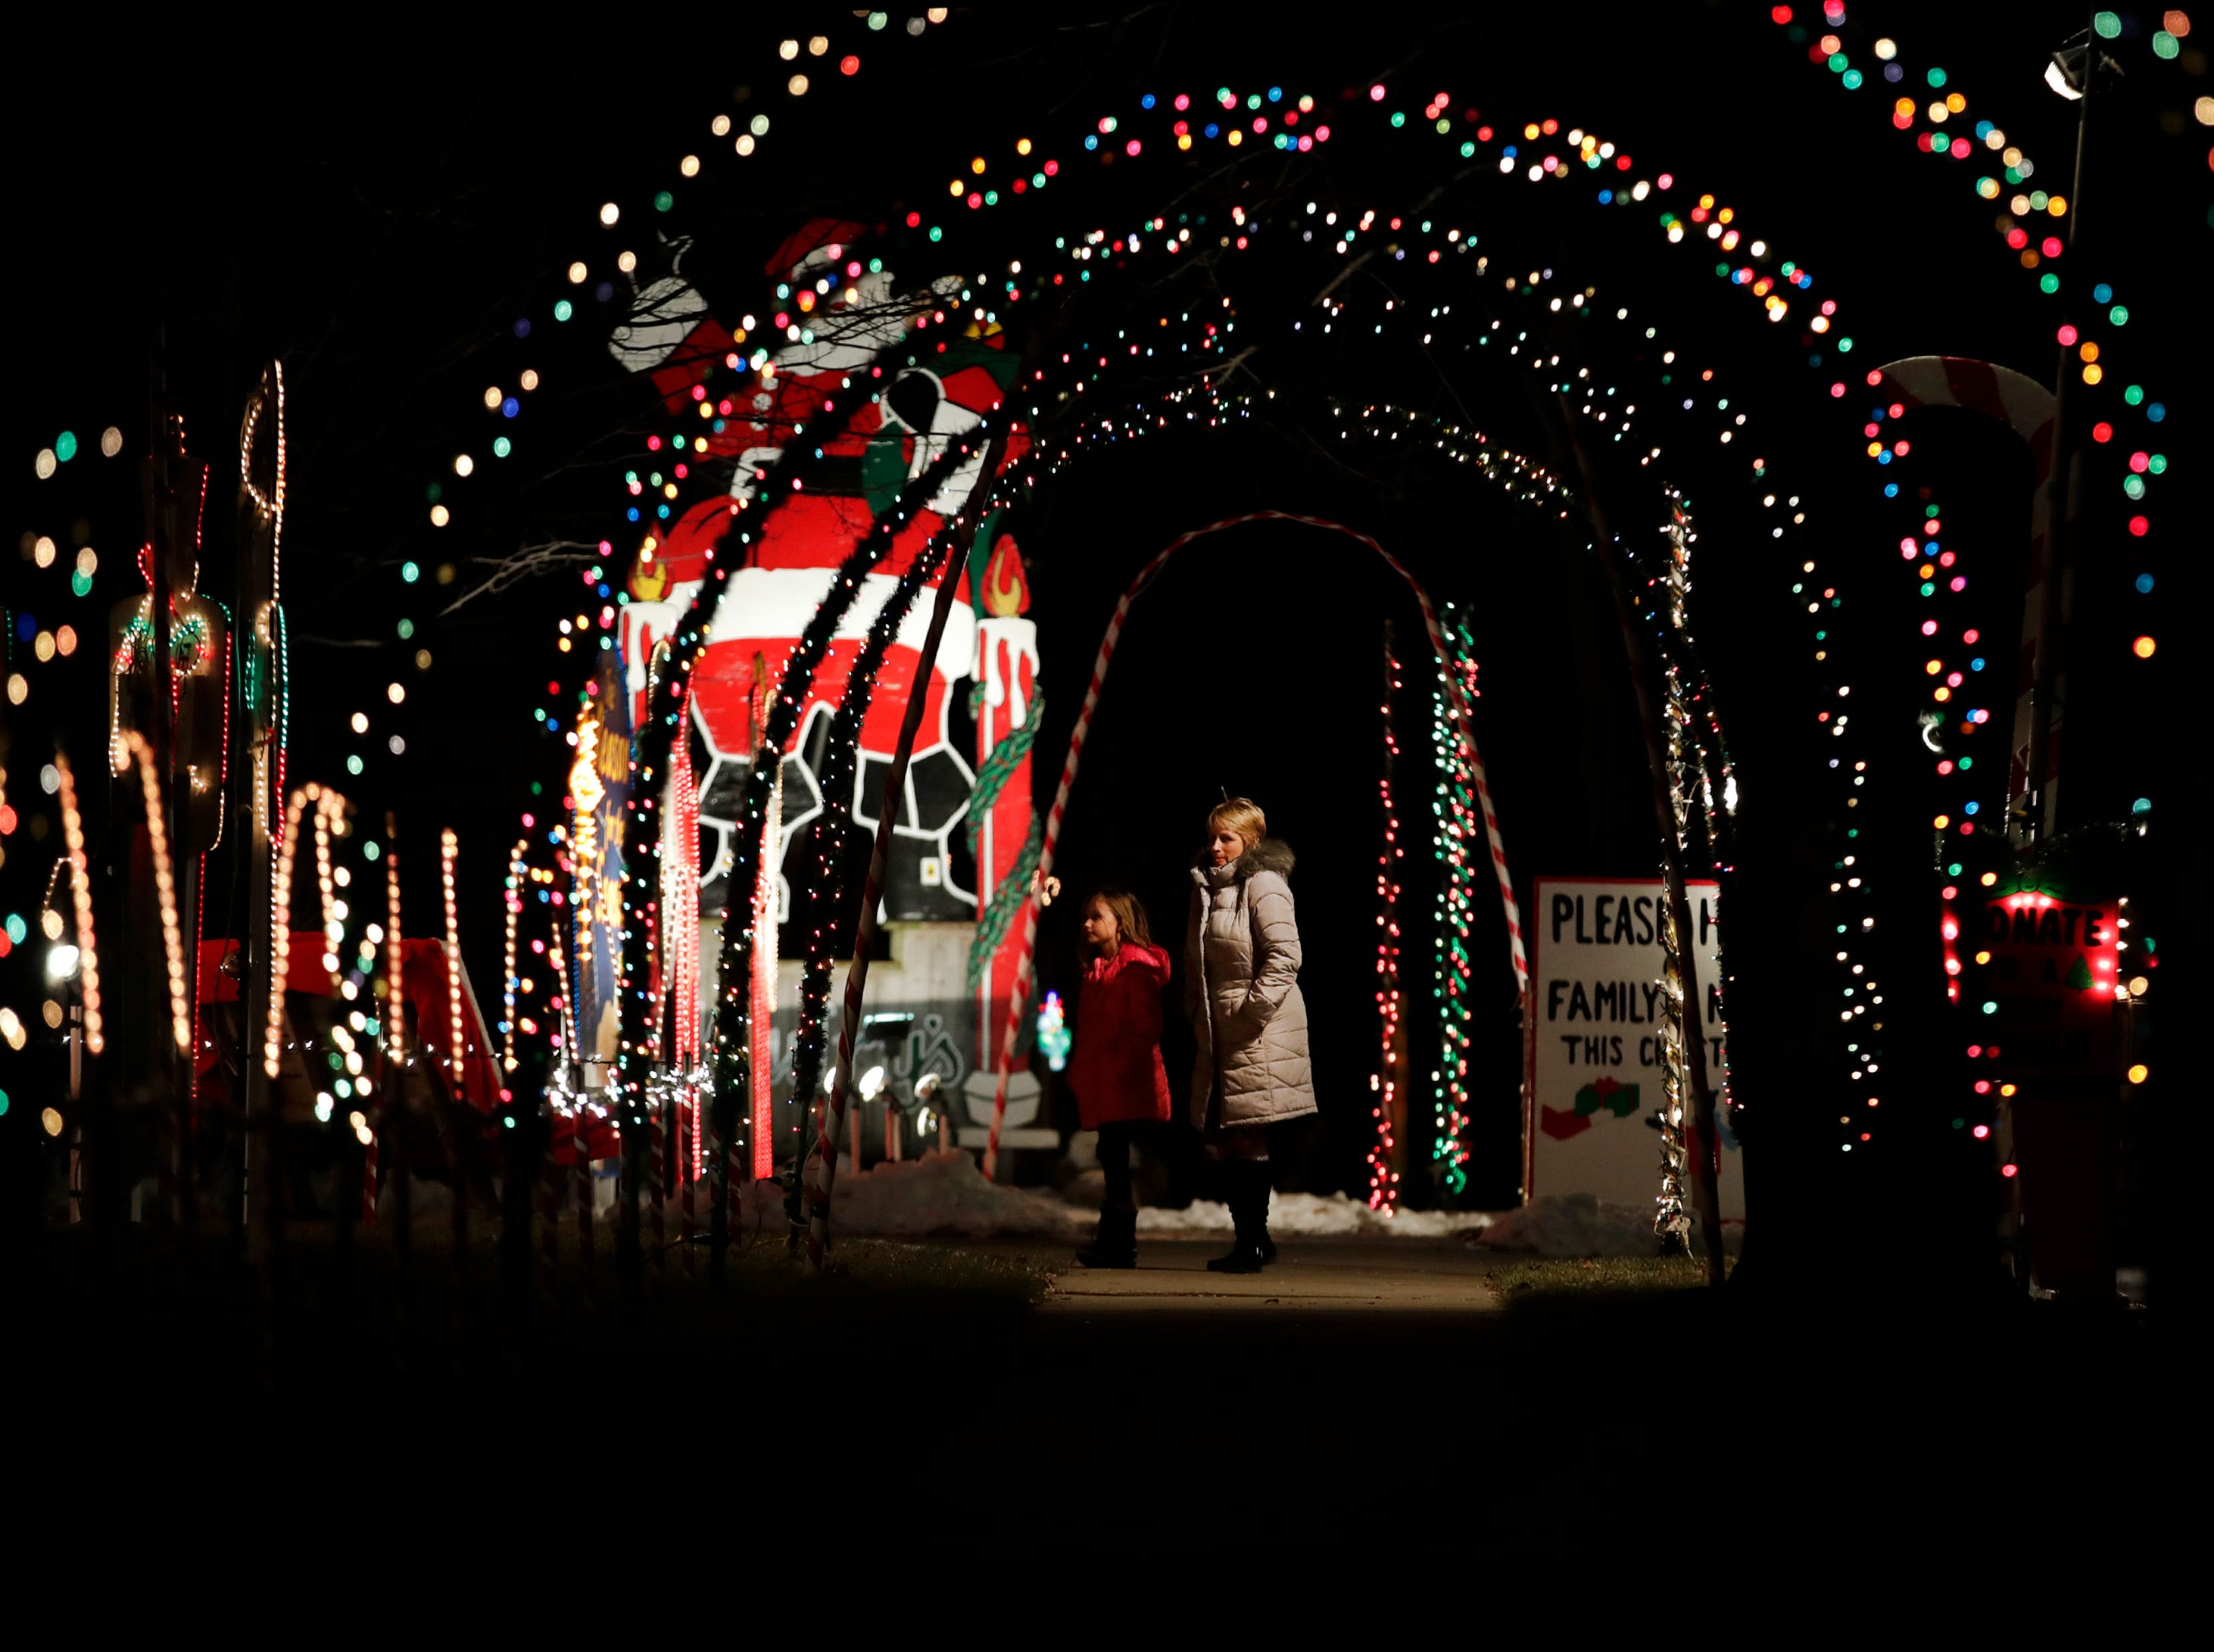 Jody Hilley, of Appleton, and her granddaughter Natalie Du Bois, 9, of Kaukauna walk through a tunnel of Christmas lights on the 500 block of Janssen Street Wednesday Dec. 5, 2018, in Combined Locks, Wis.